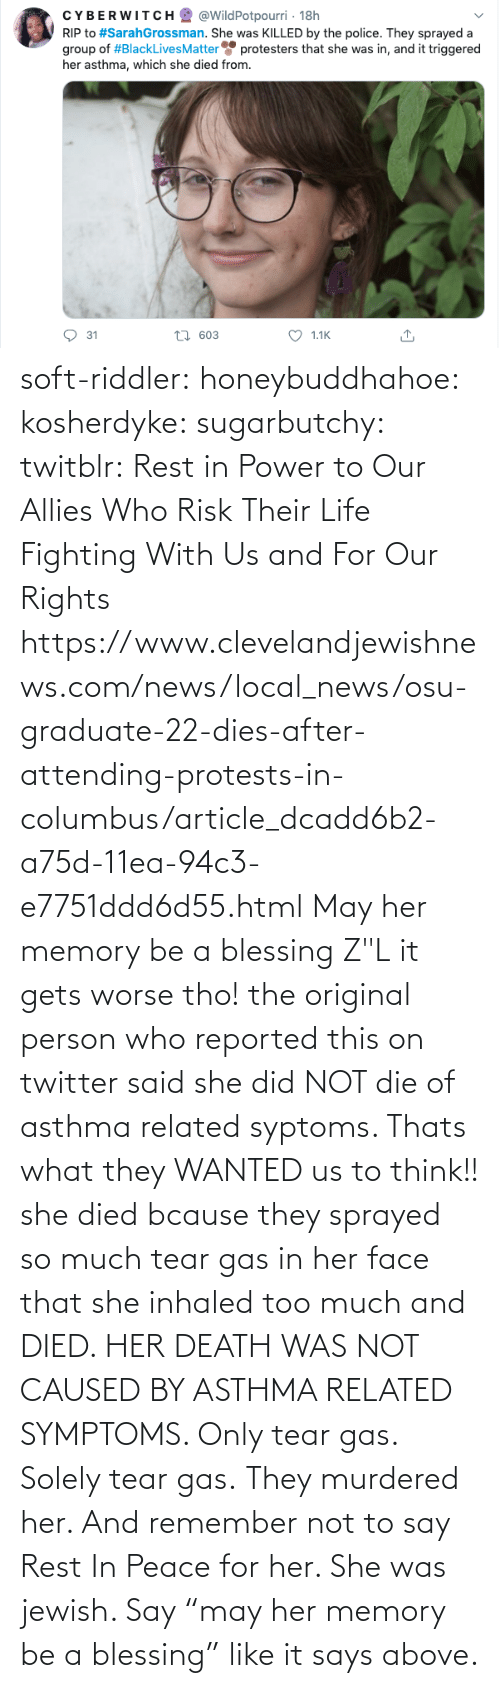 "local: soft-riddler:  honeybuddhahoe:  kosherdyke:  sugarbutchy:  twitblr: Rest in Power to Our Allies Who Risk Their Life Fighting With Us and For Our Rights https://www.clevelandjewishnews.com/news/local_news/osu-graduate-22-dies-after-attending-protests-in-columbus/article_dcadd6b2-a75d-11ea-94c3-e7751ddd6d55.html    May her memory be a blessing Z""L  it gets worse tho! the original person who reported this on twitter said she did NOT die of asthma related syptoms. Thats what they WANTED us to think!! she died bcause they sprayed so much tear gas in her face that she inhaled too much and DIED. HER DEATH WAS NOT CAUSED BY ASTHMA RELATED SYMPTOMS. Only tear gas. Solely tear gas. They murdered her.     And remember not to say Rest In Peace for her. She was jewish. Say ""may her memory be a blessing"" like it says above."